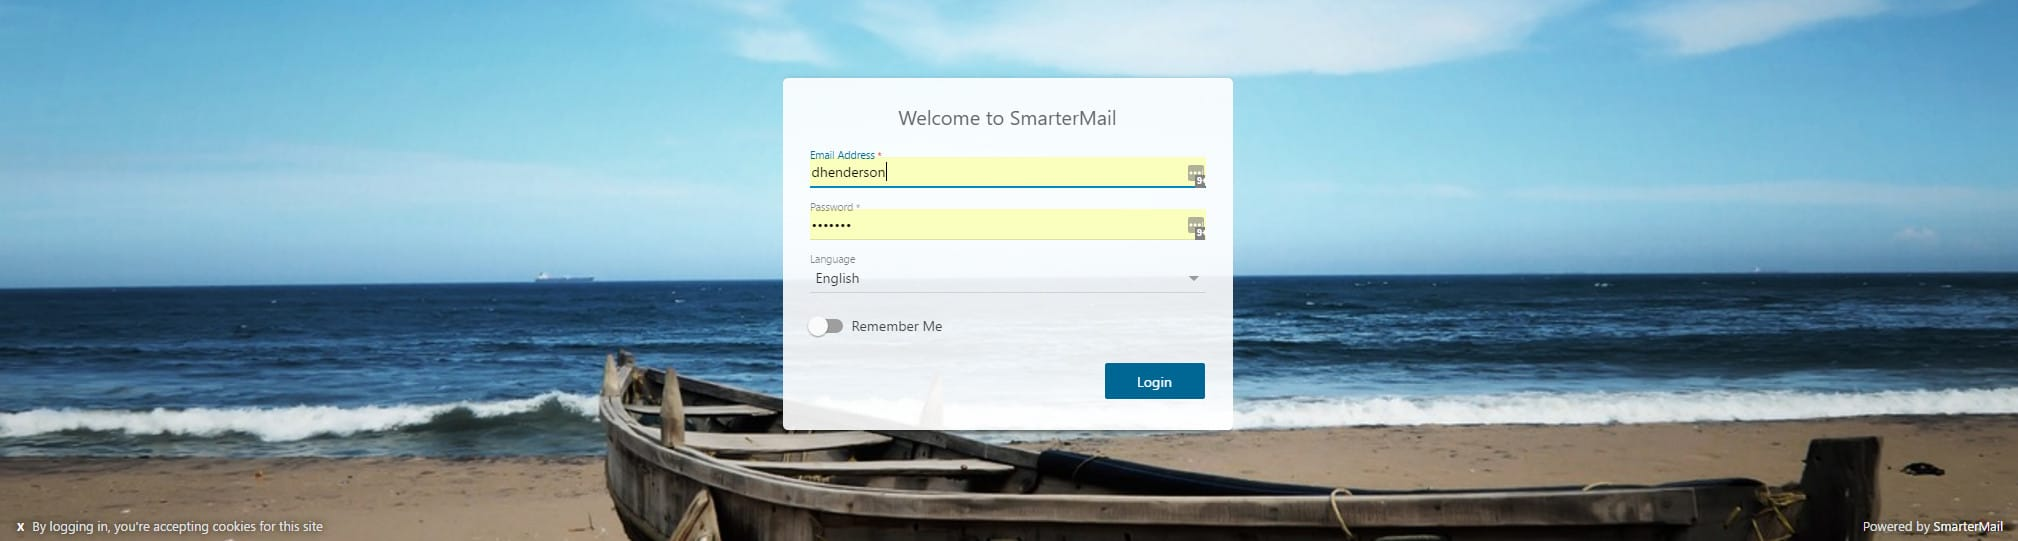 Smartermail New WebMail Interface